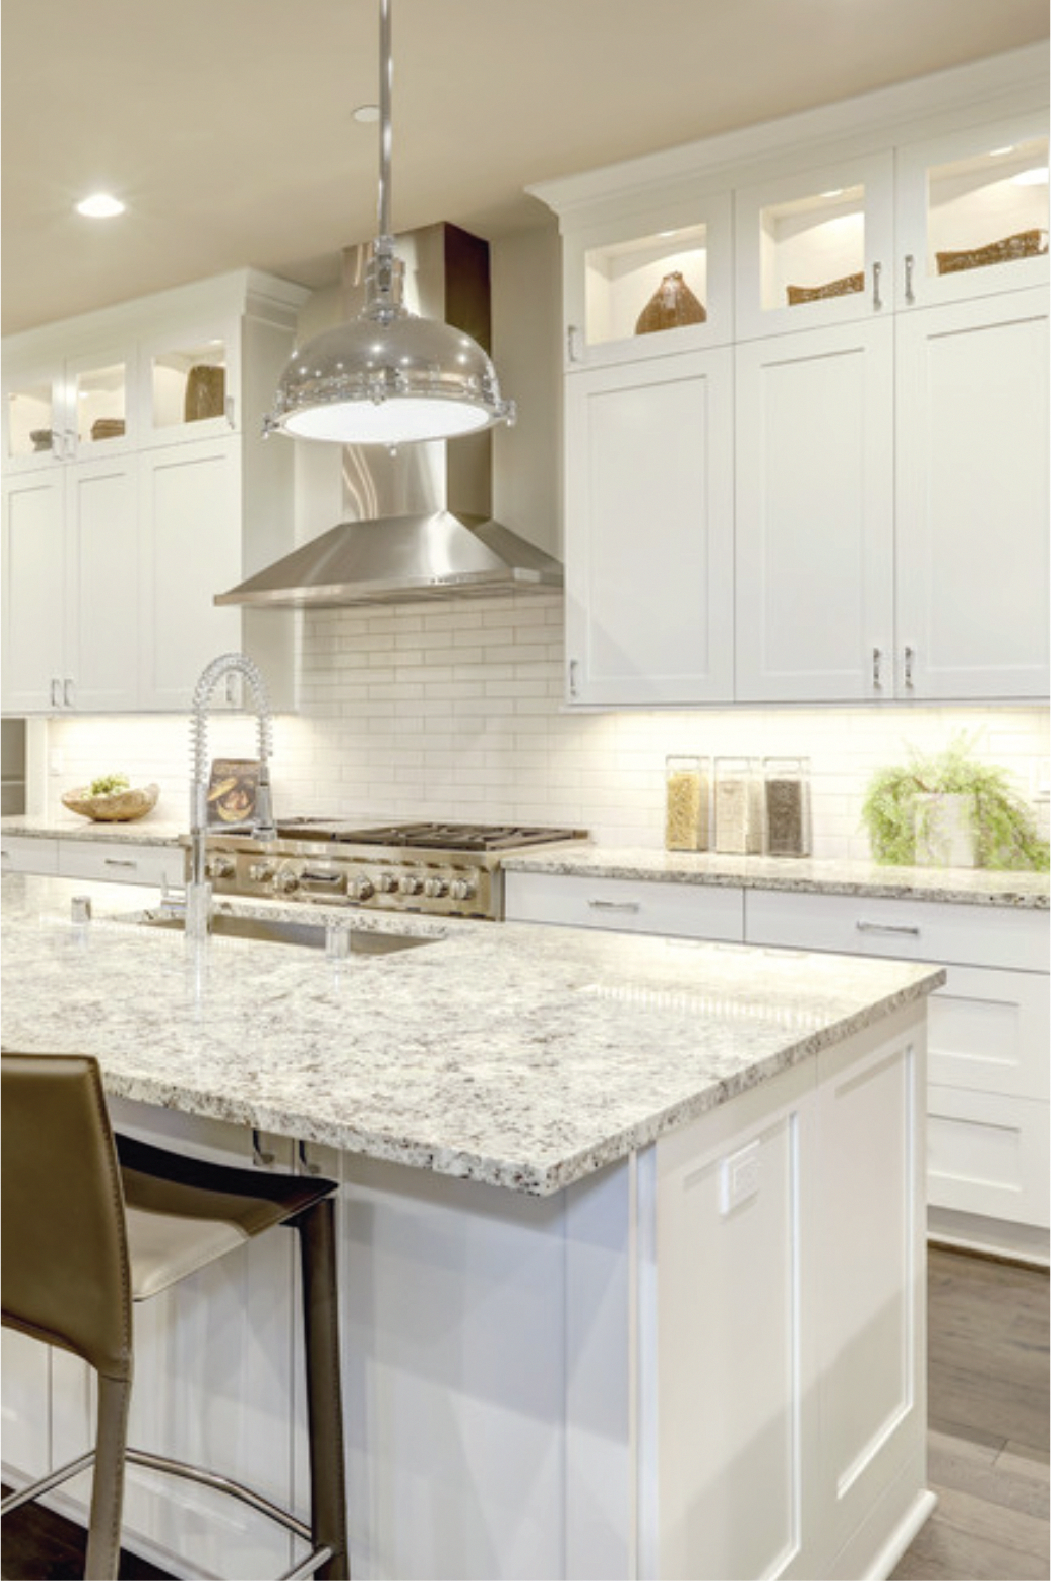 Hopeful separated kitchen renovation tips check this site out ...